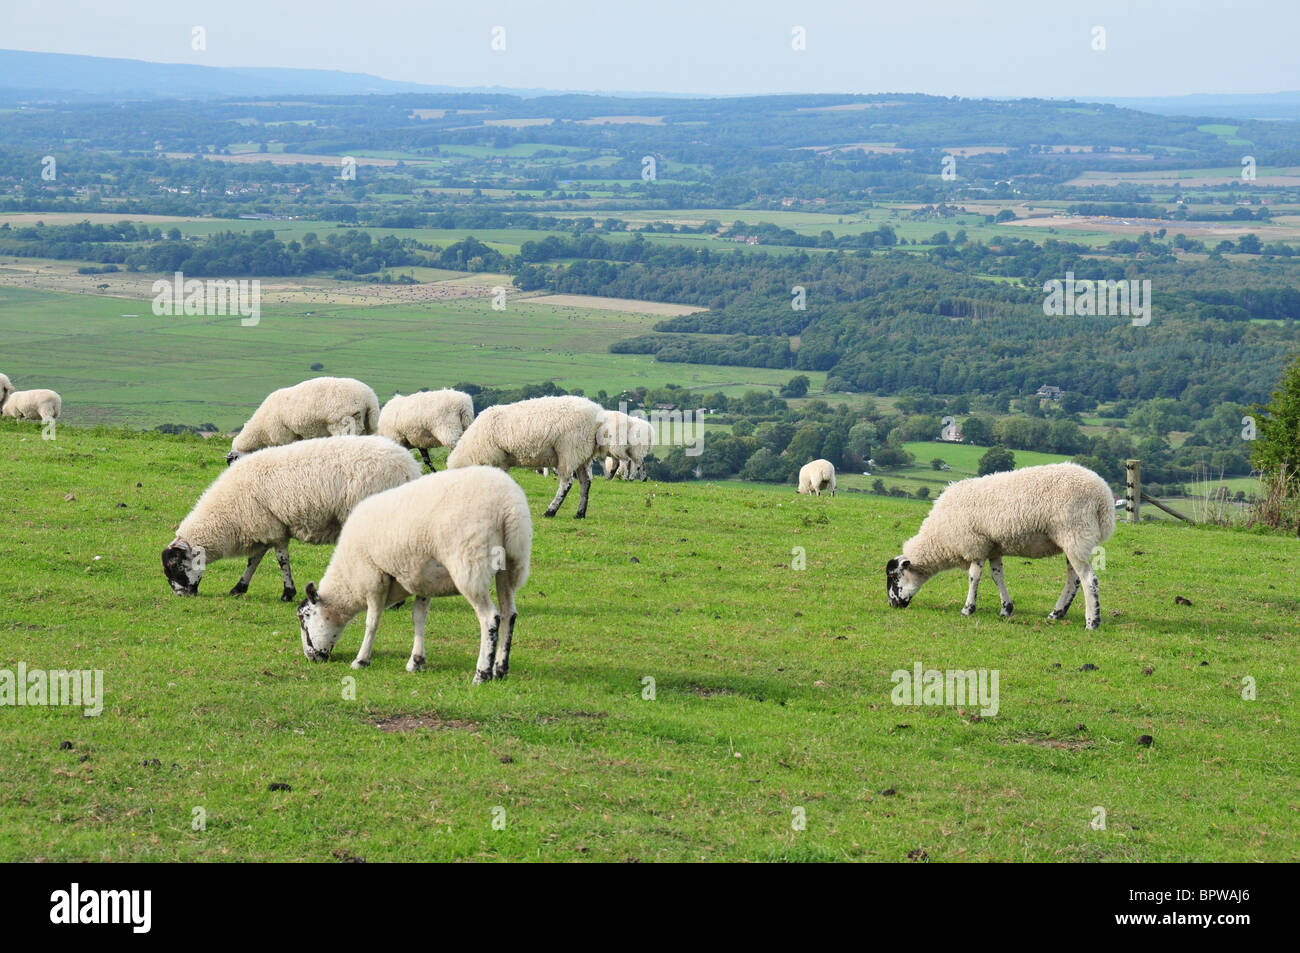 Sheep grazing on South Downs - Stock Image